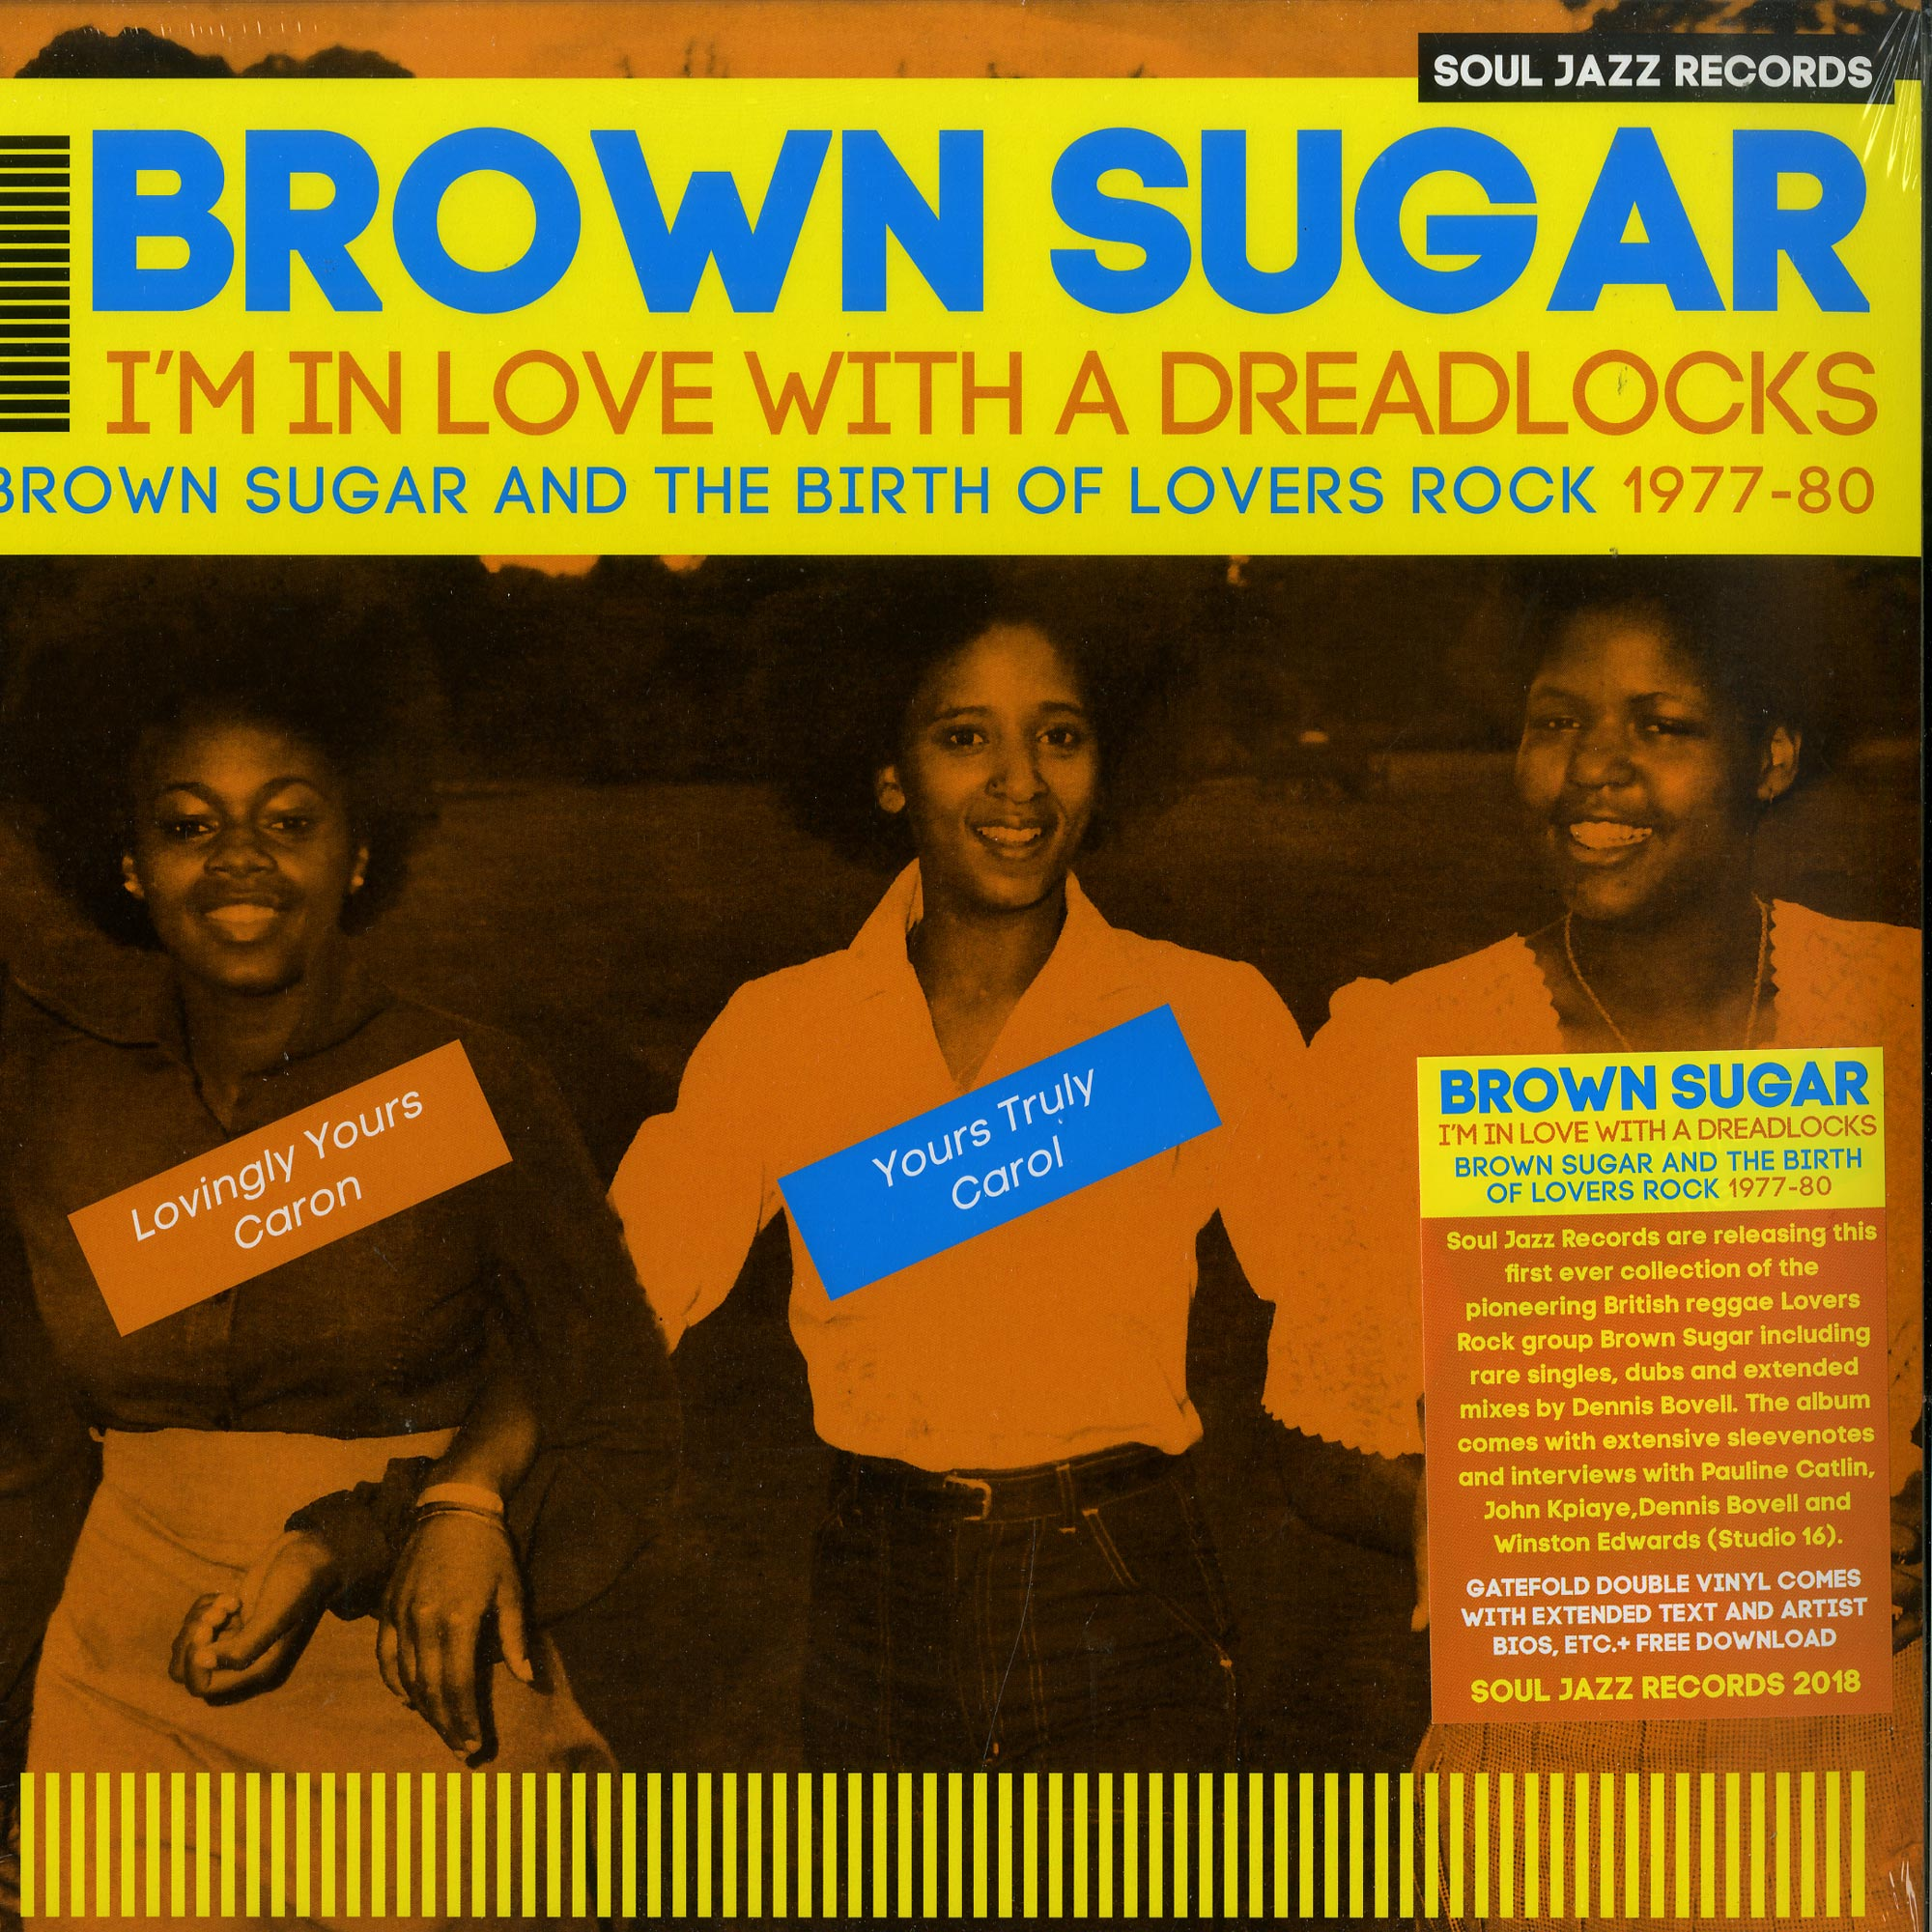 Brown Sugar - I M IN LOVE WITH A DREADLOCKS